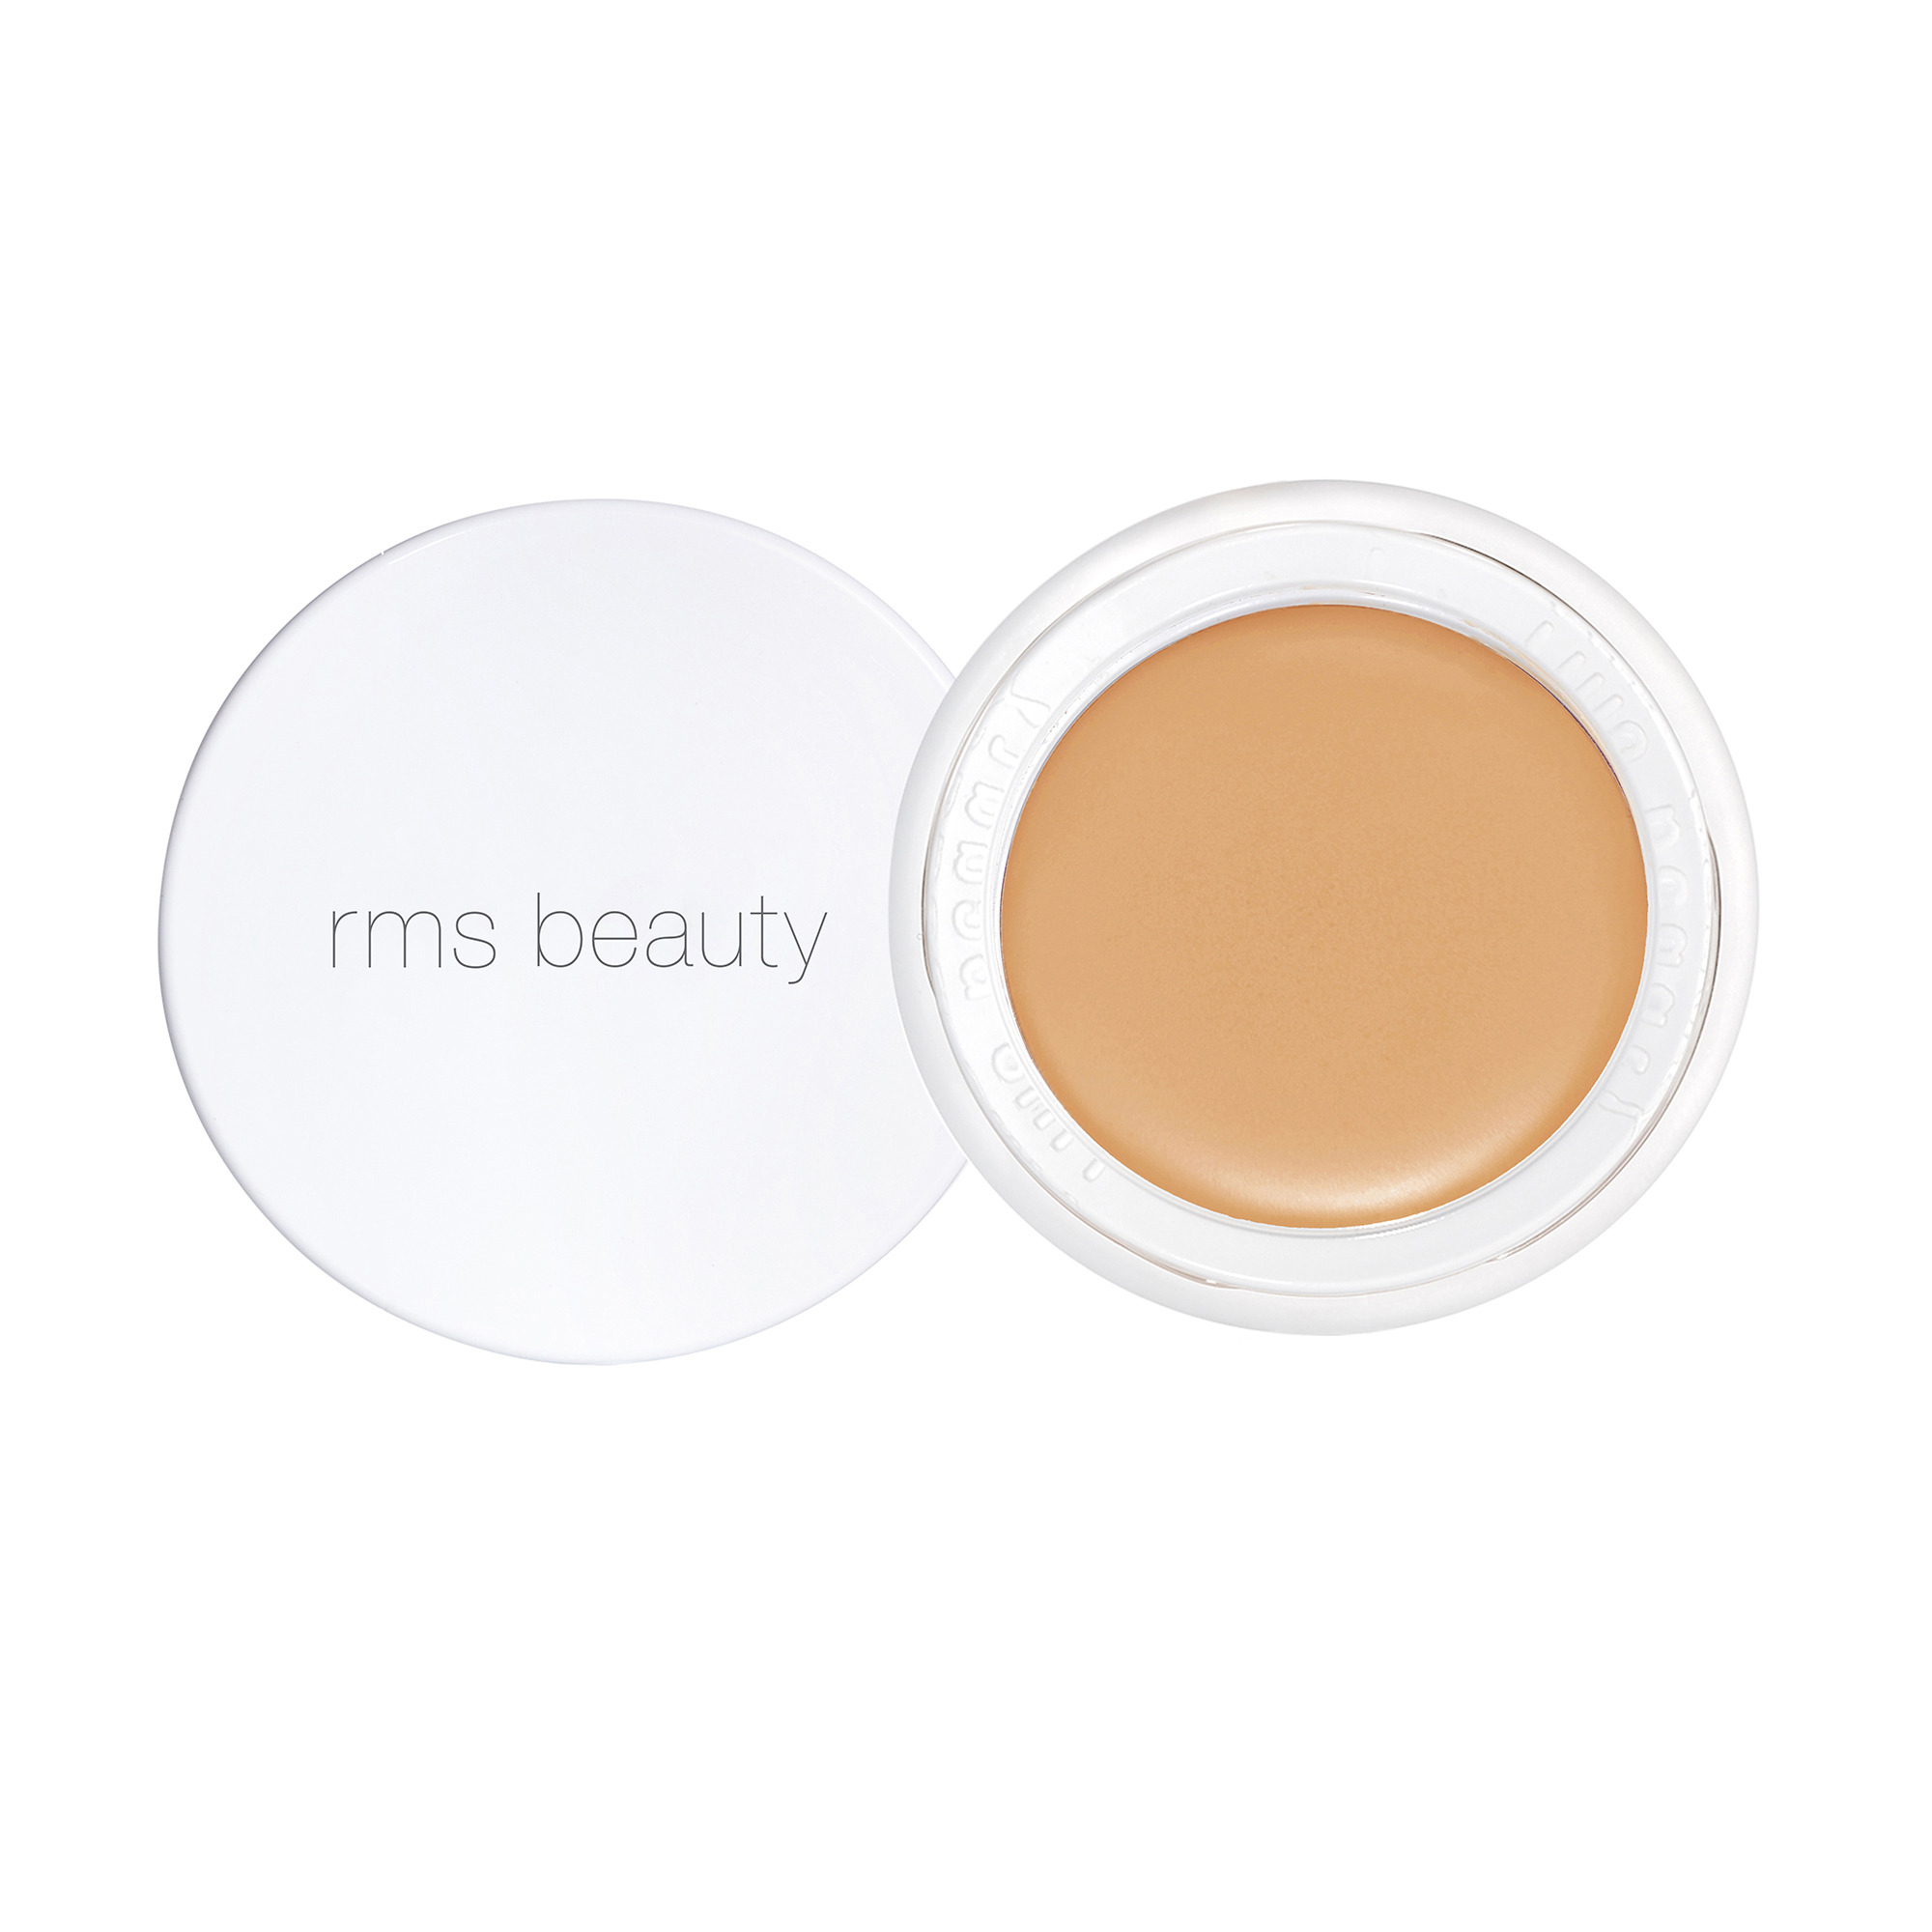 RMS  BEAUTY  КРЕМ КОНСИЛЕР ДЛЯ ЛИЦА  UN COVER-UP CREAM CONCEALER  33